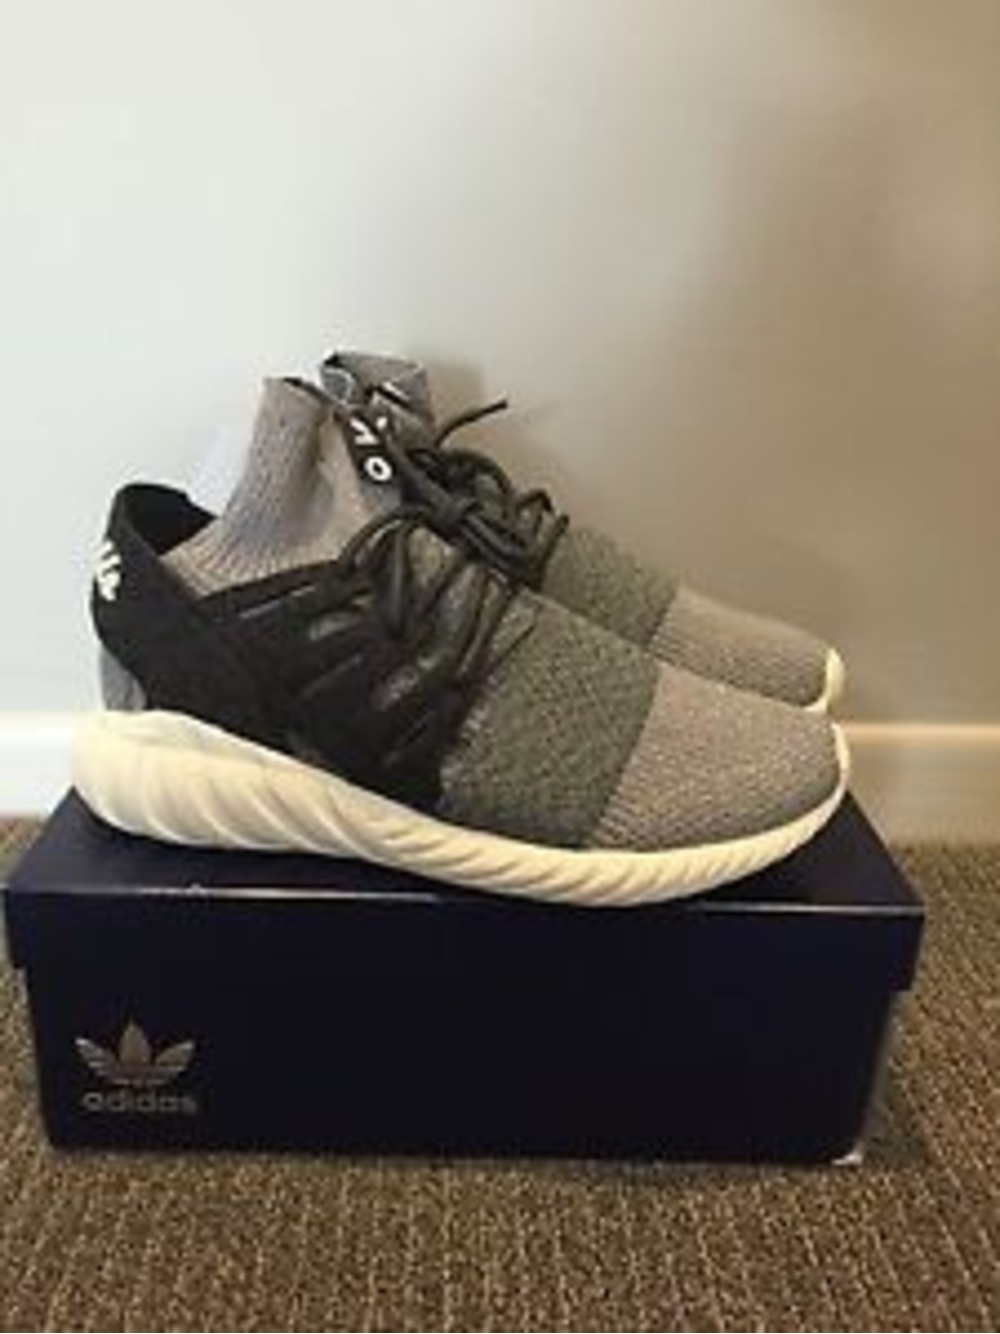 Adidas Originals Tubular Runner Toddler Shoes Sz 6k Black White 6